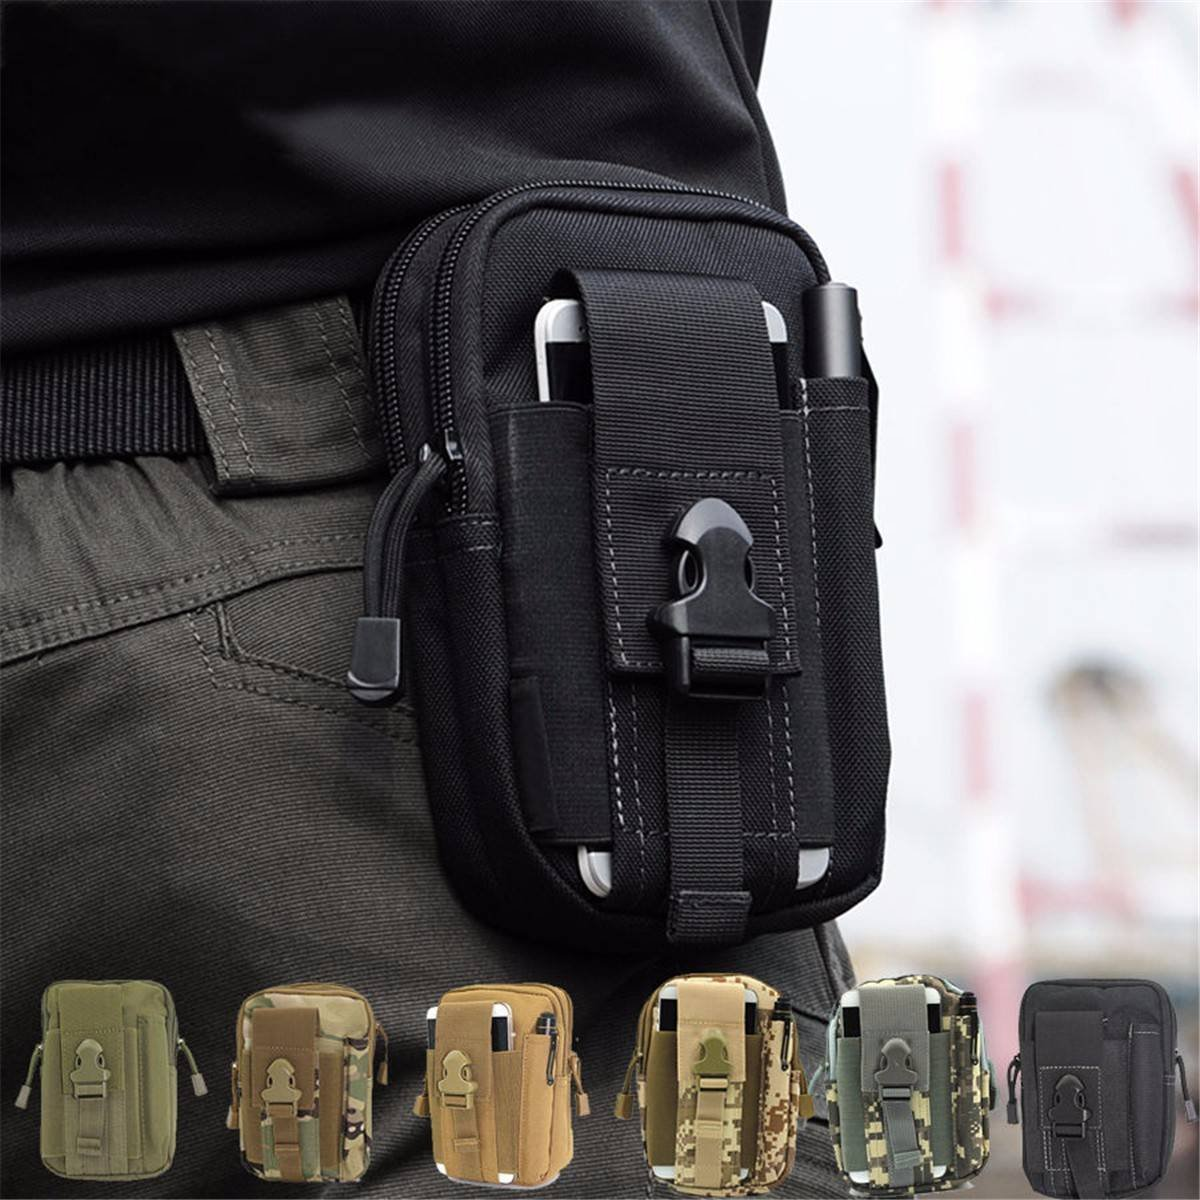 CAMTOA Multi-Purpose Tactical Waist Bag Poly Tool Holder EDC Pouch Bag Military Utility Tactical Waist Pack Camping Hiking Pouch Arrny Green